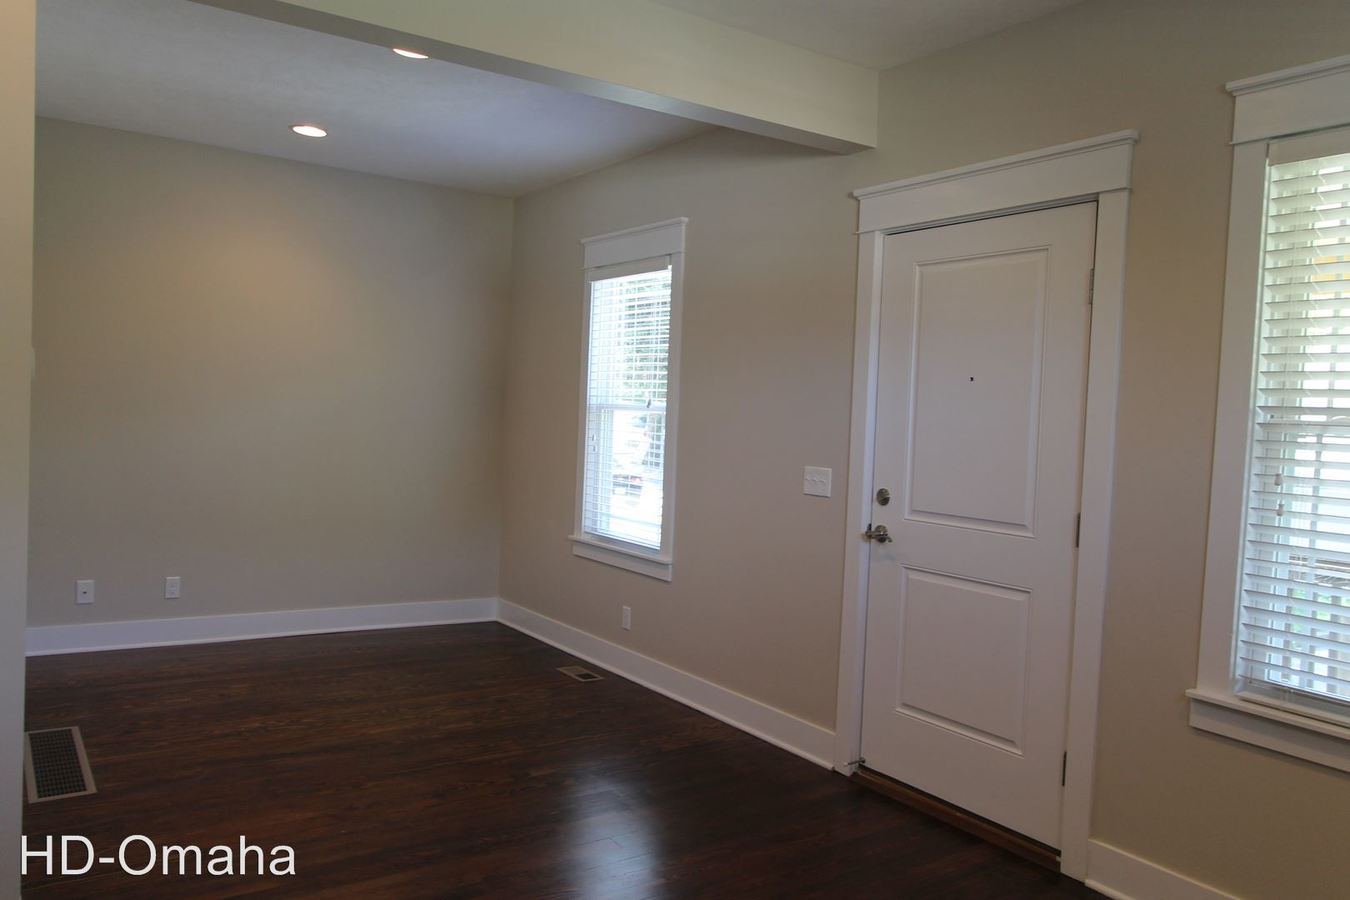 2 Bedrooms 1 Bathroom Apartment for rent at The Cottages in Omaha, NE